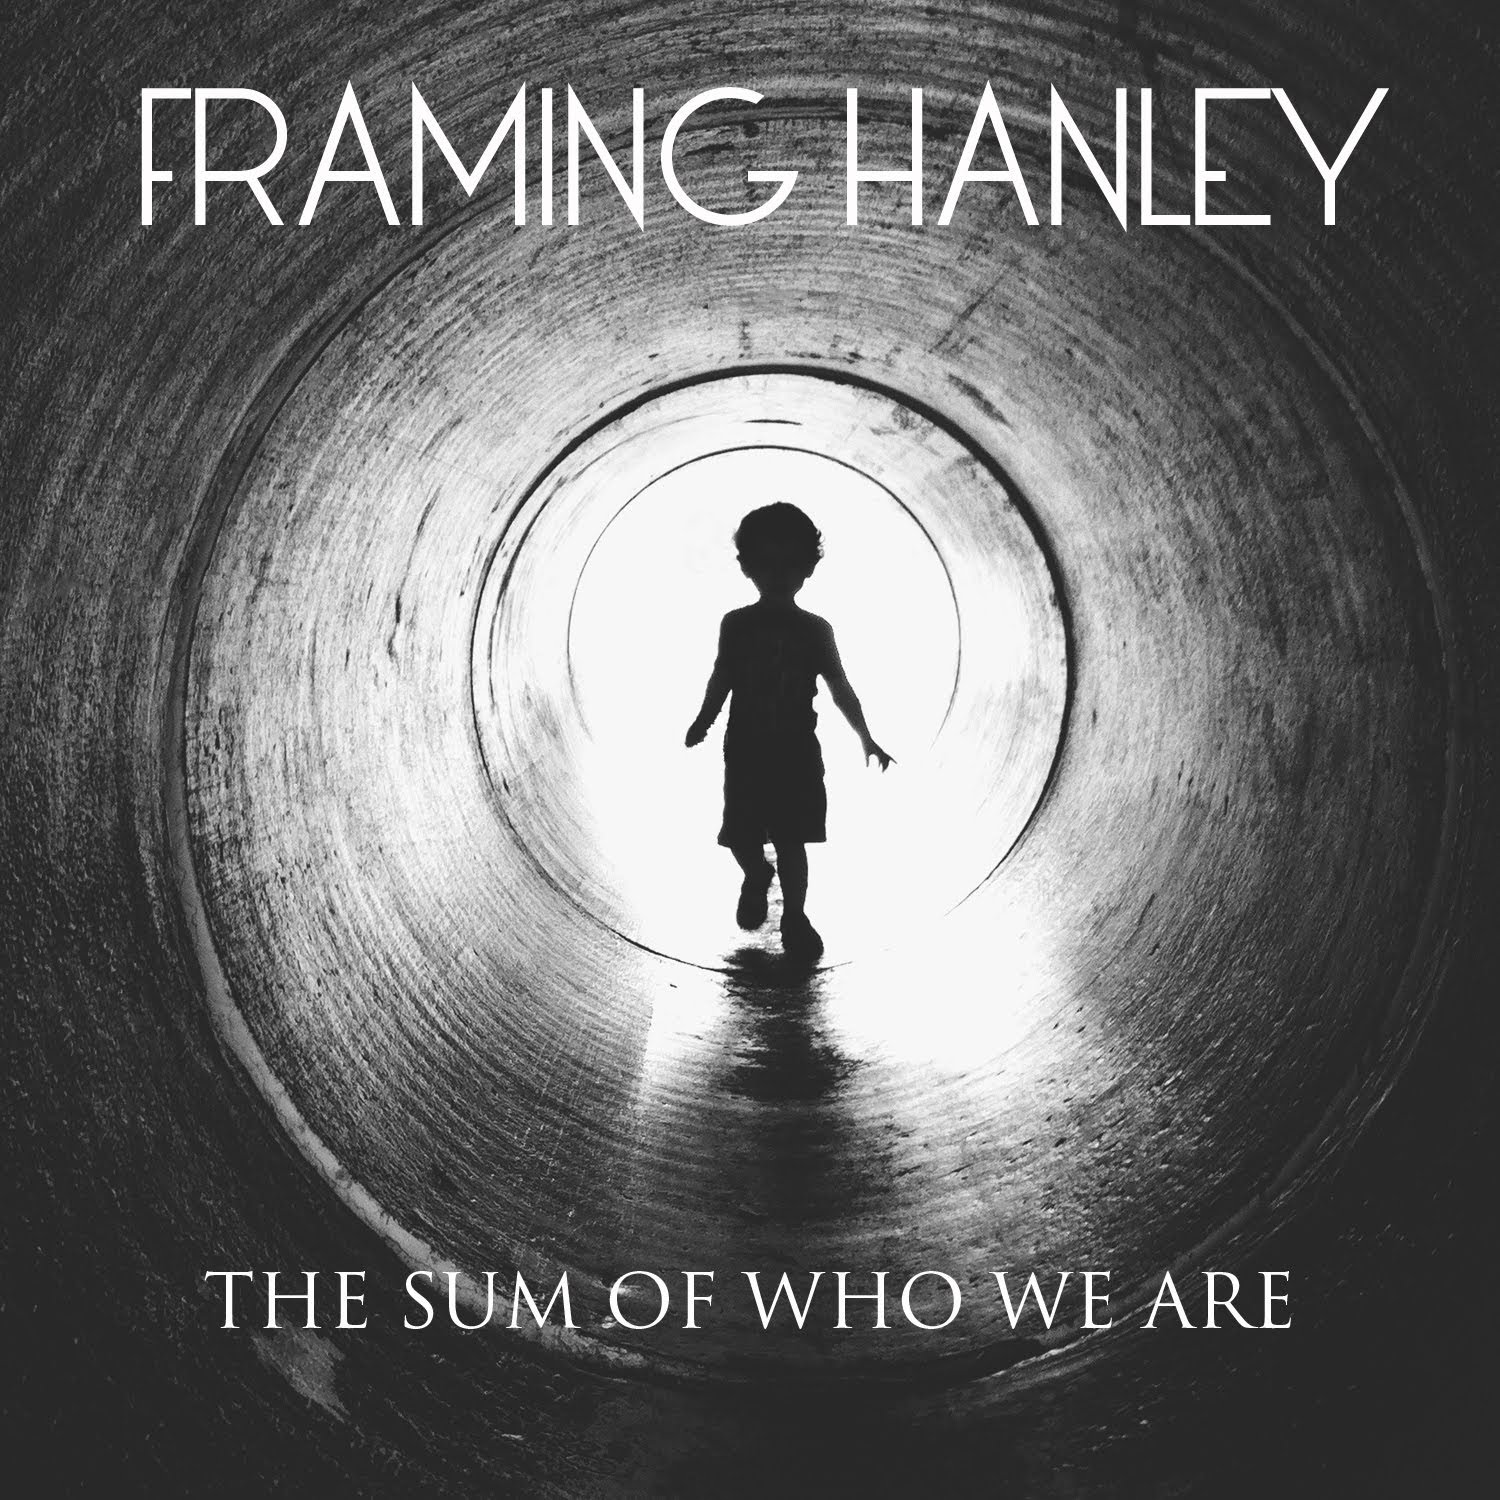 Framing Hanley The Sum of Who We Are